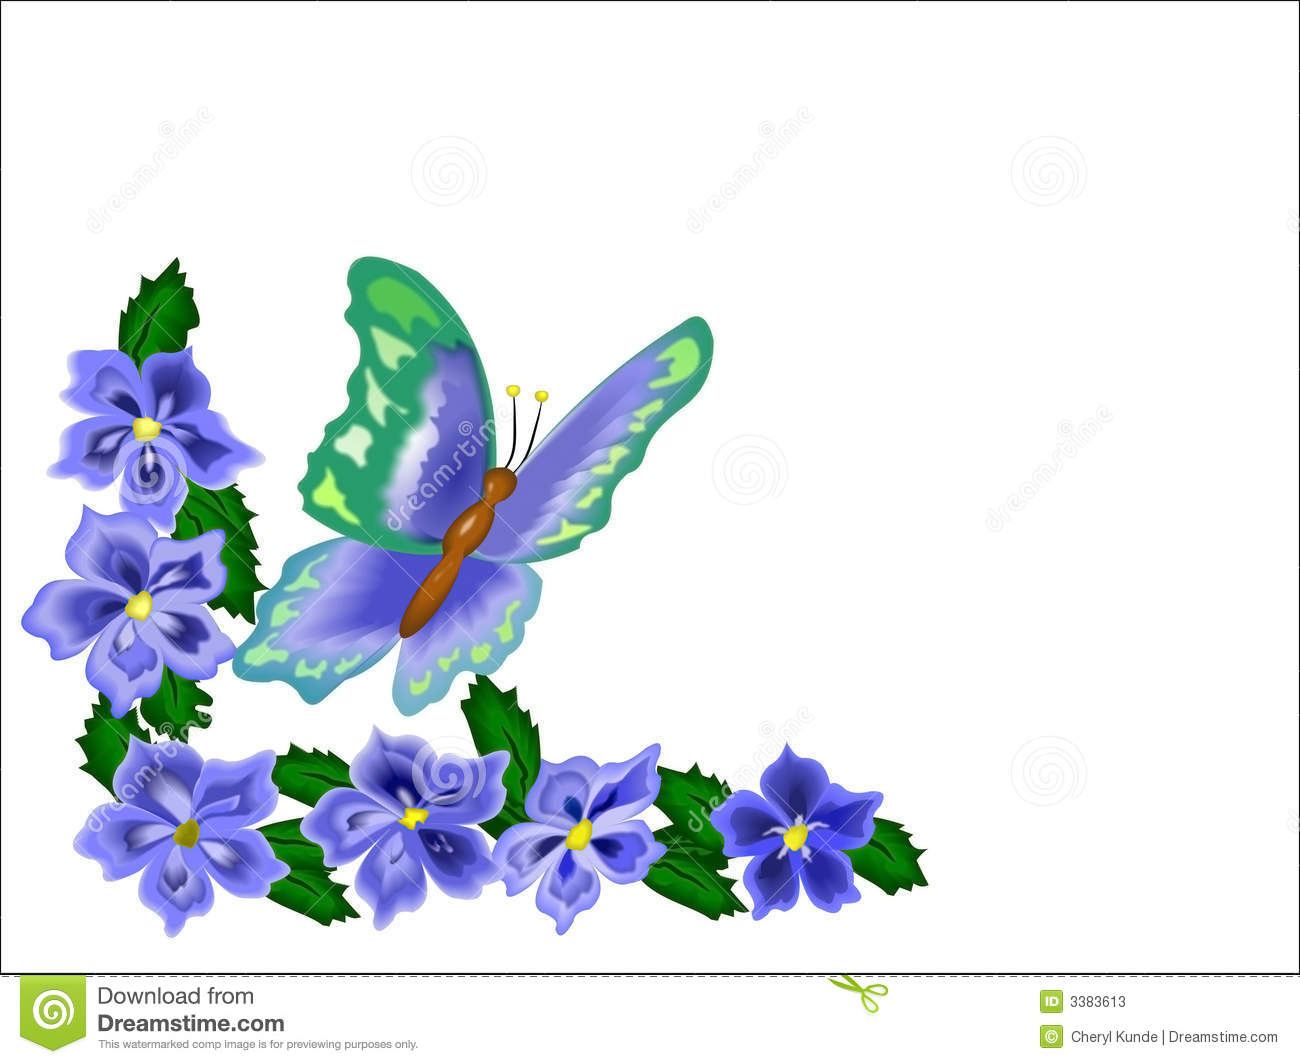 Flower and butterfly border clip art - photo#21